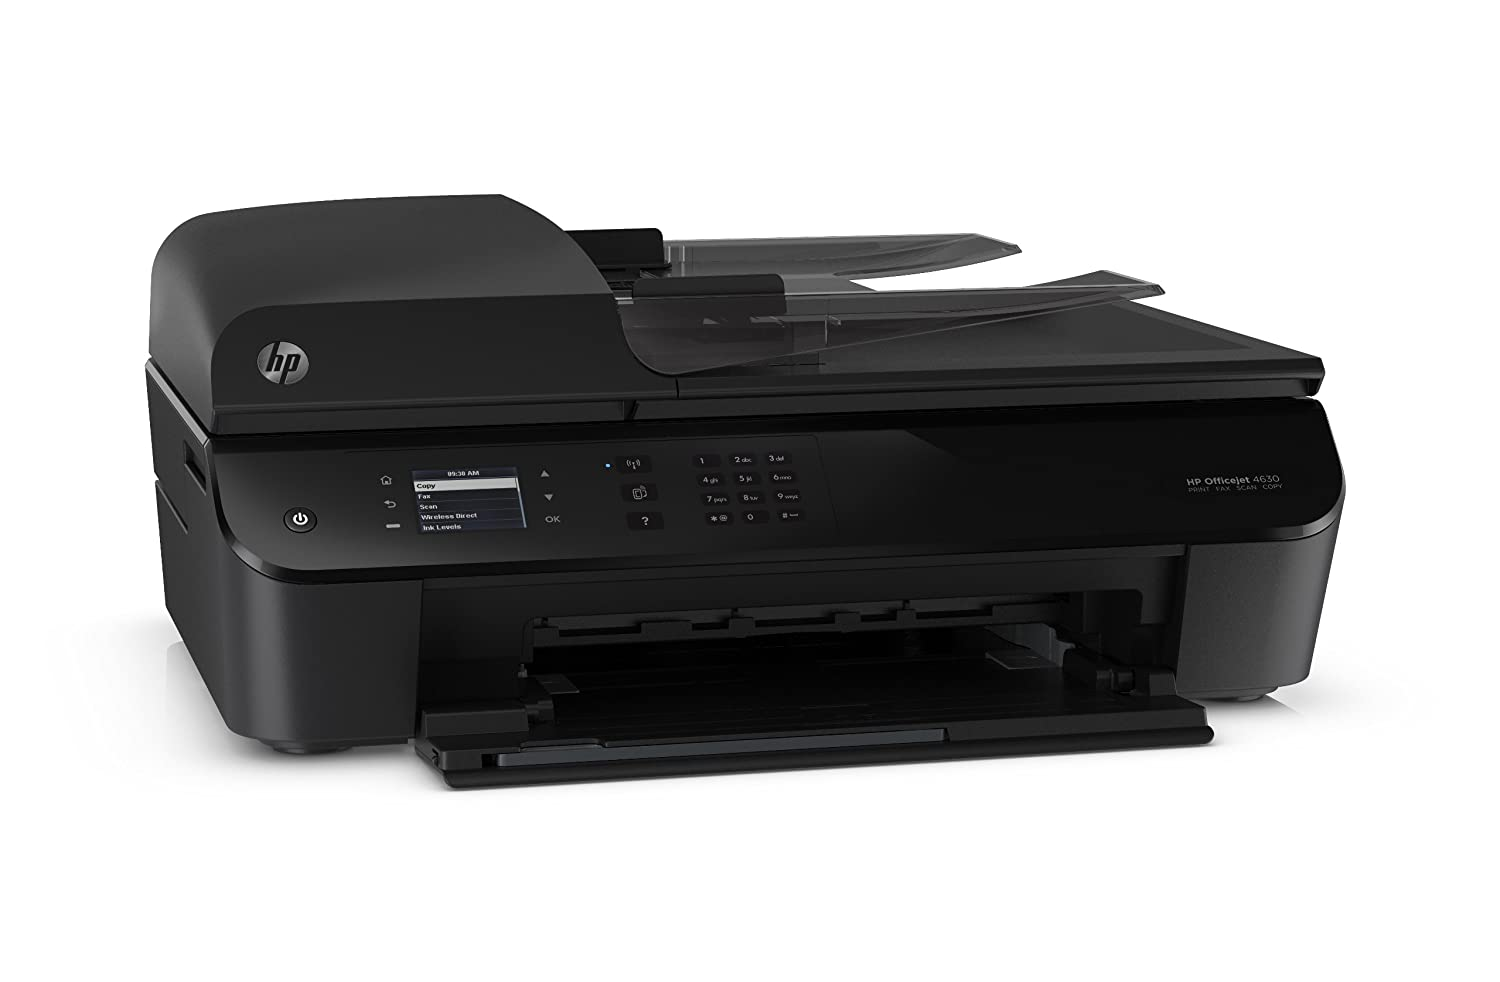 HP Officejet 4632 e-All-in-One Printer